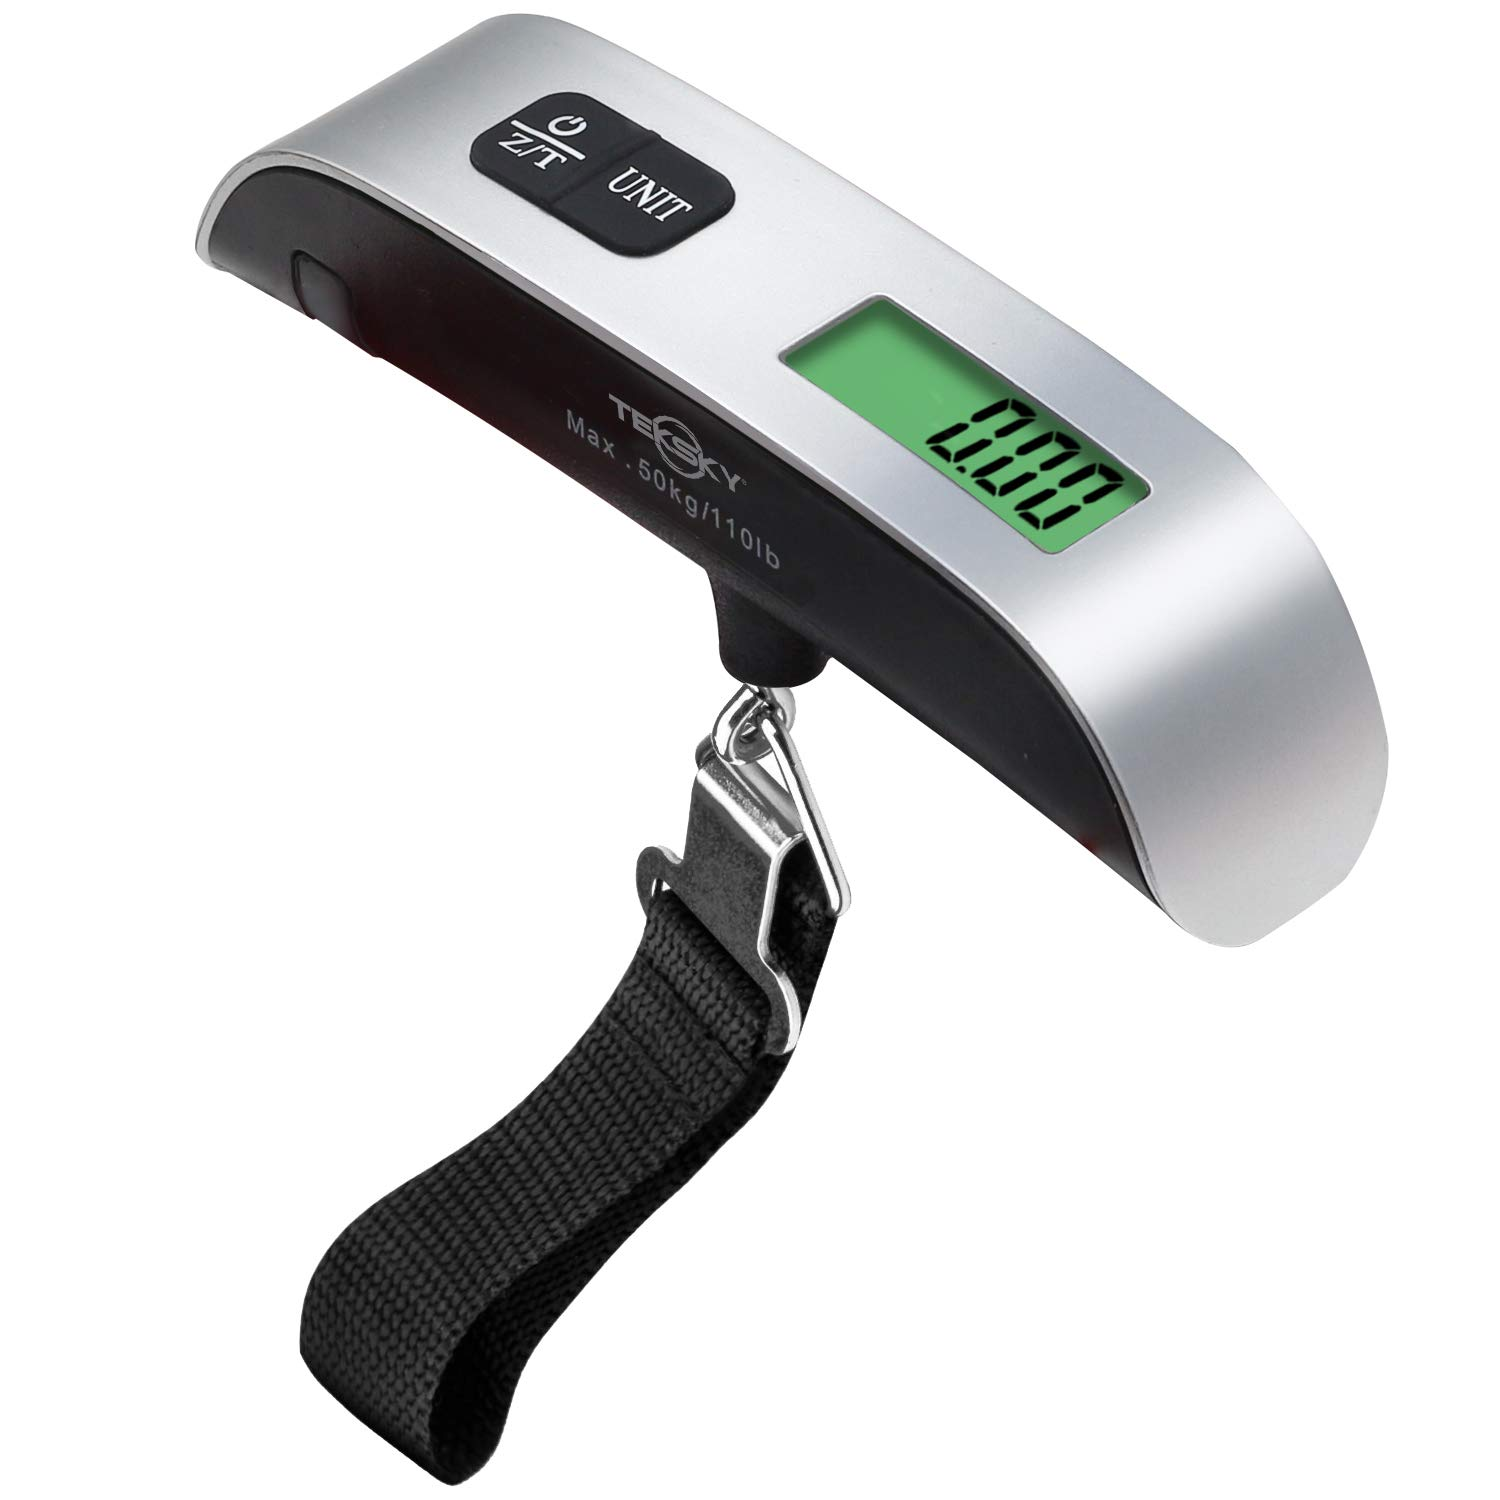 Luggage /& More MAX 110 lbs Textured Hand Grip and Temperature Sensor TekSky Digital Hanging Scale for Traveling